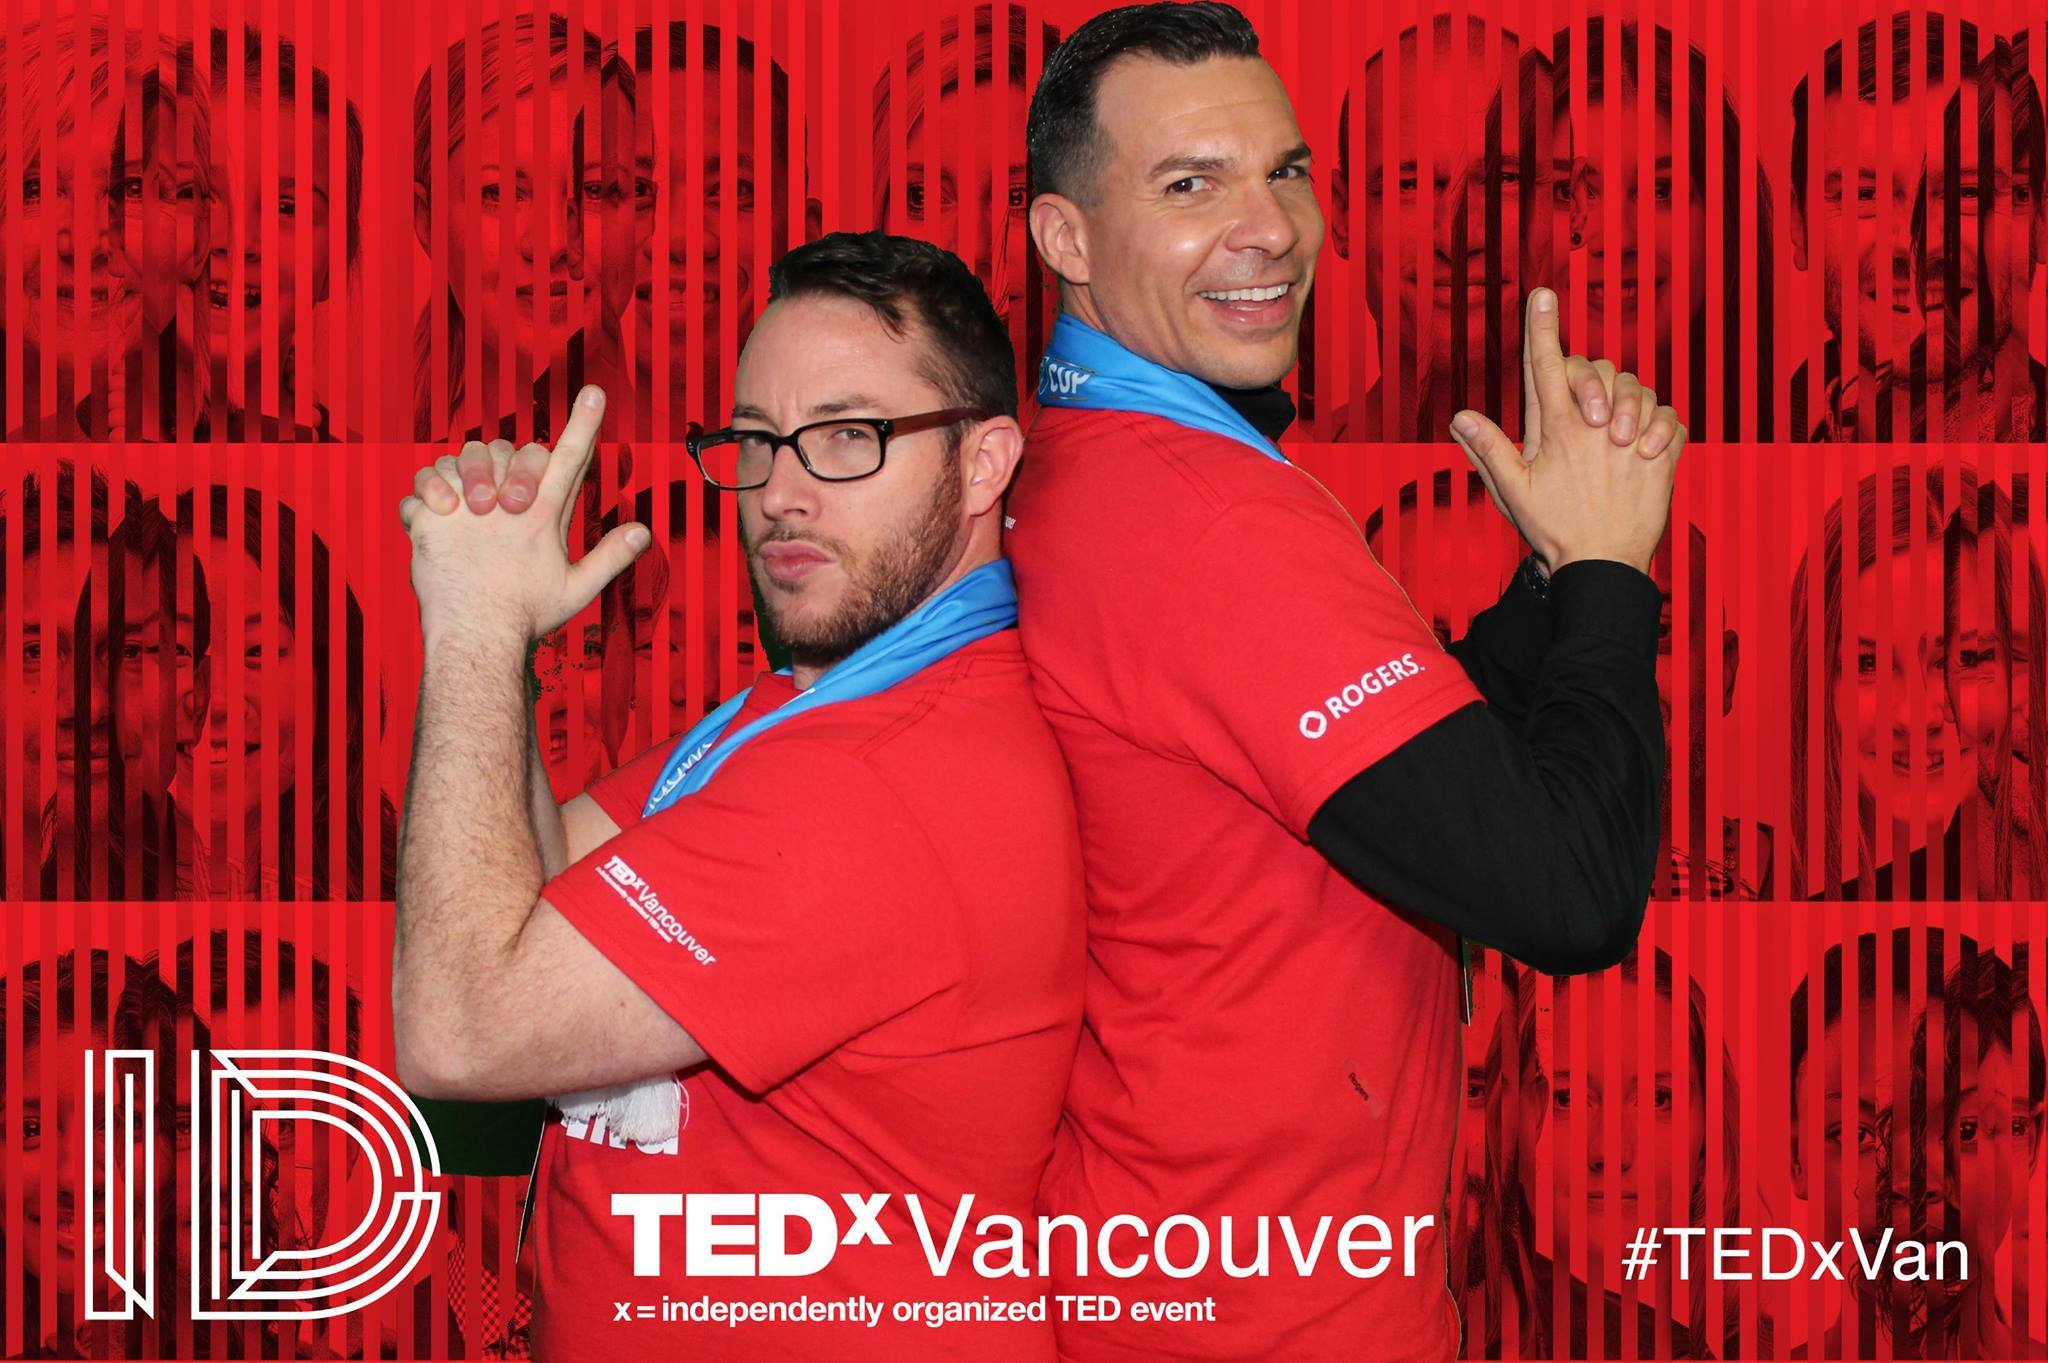 Ted Talks Vancouver photo